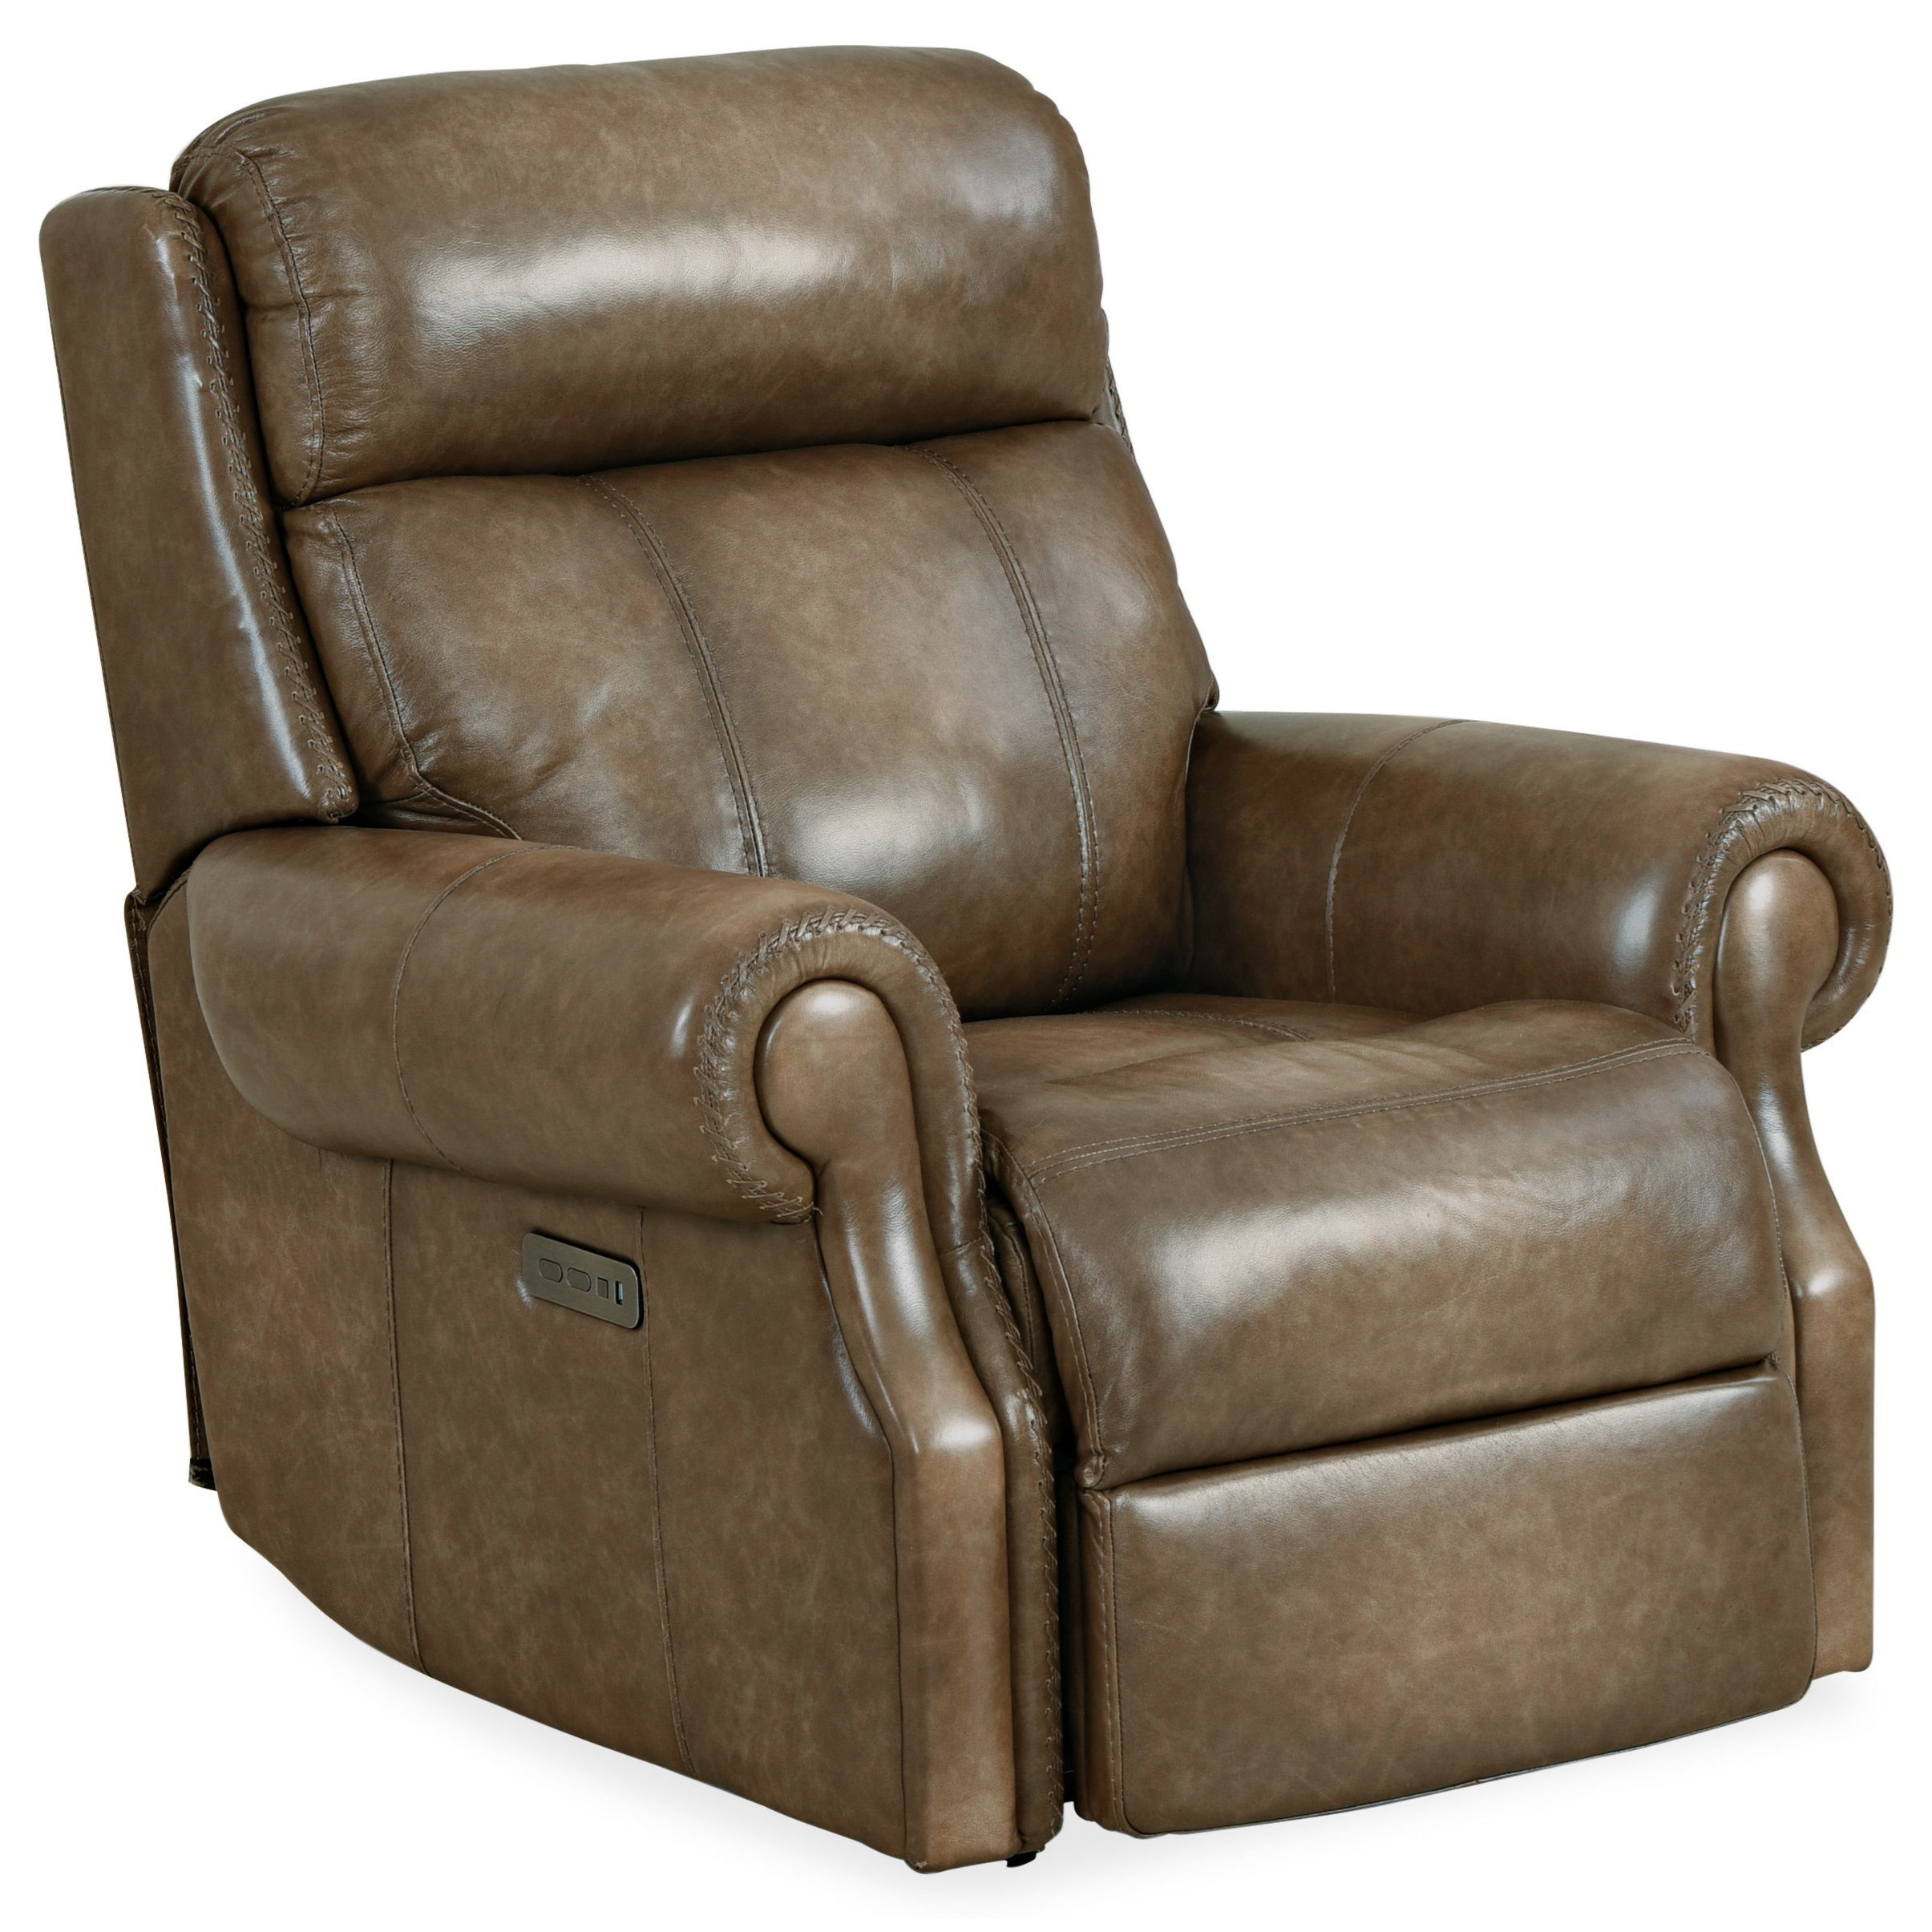 Brooks Power Recliner w/ Power Headrest by Hooker Furniture at Baer's Furniture